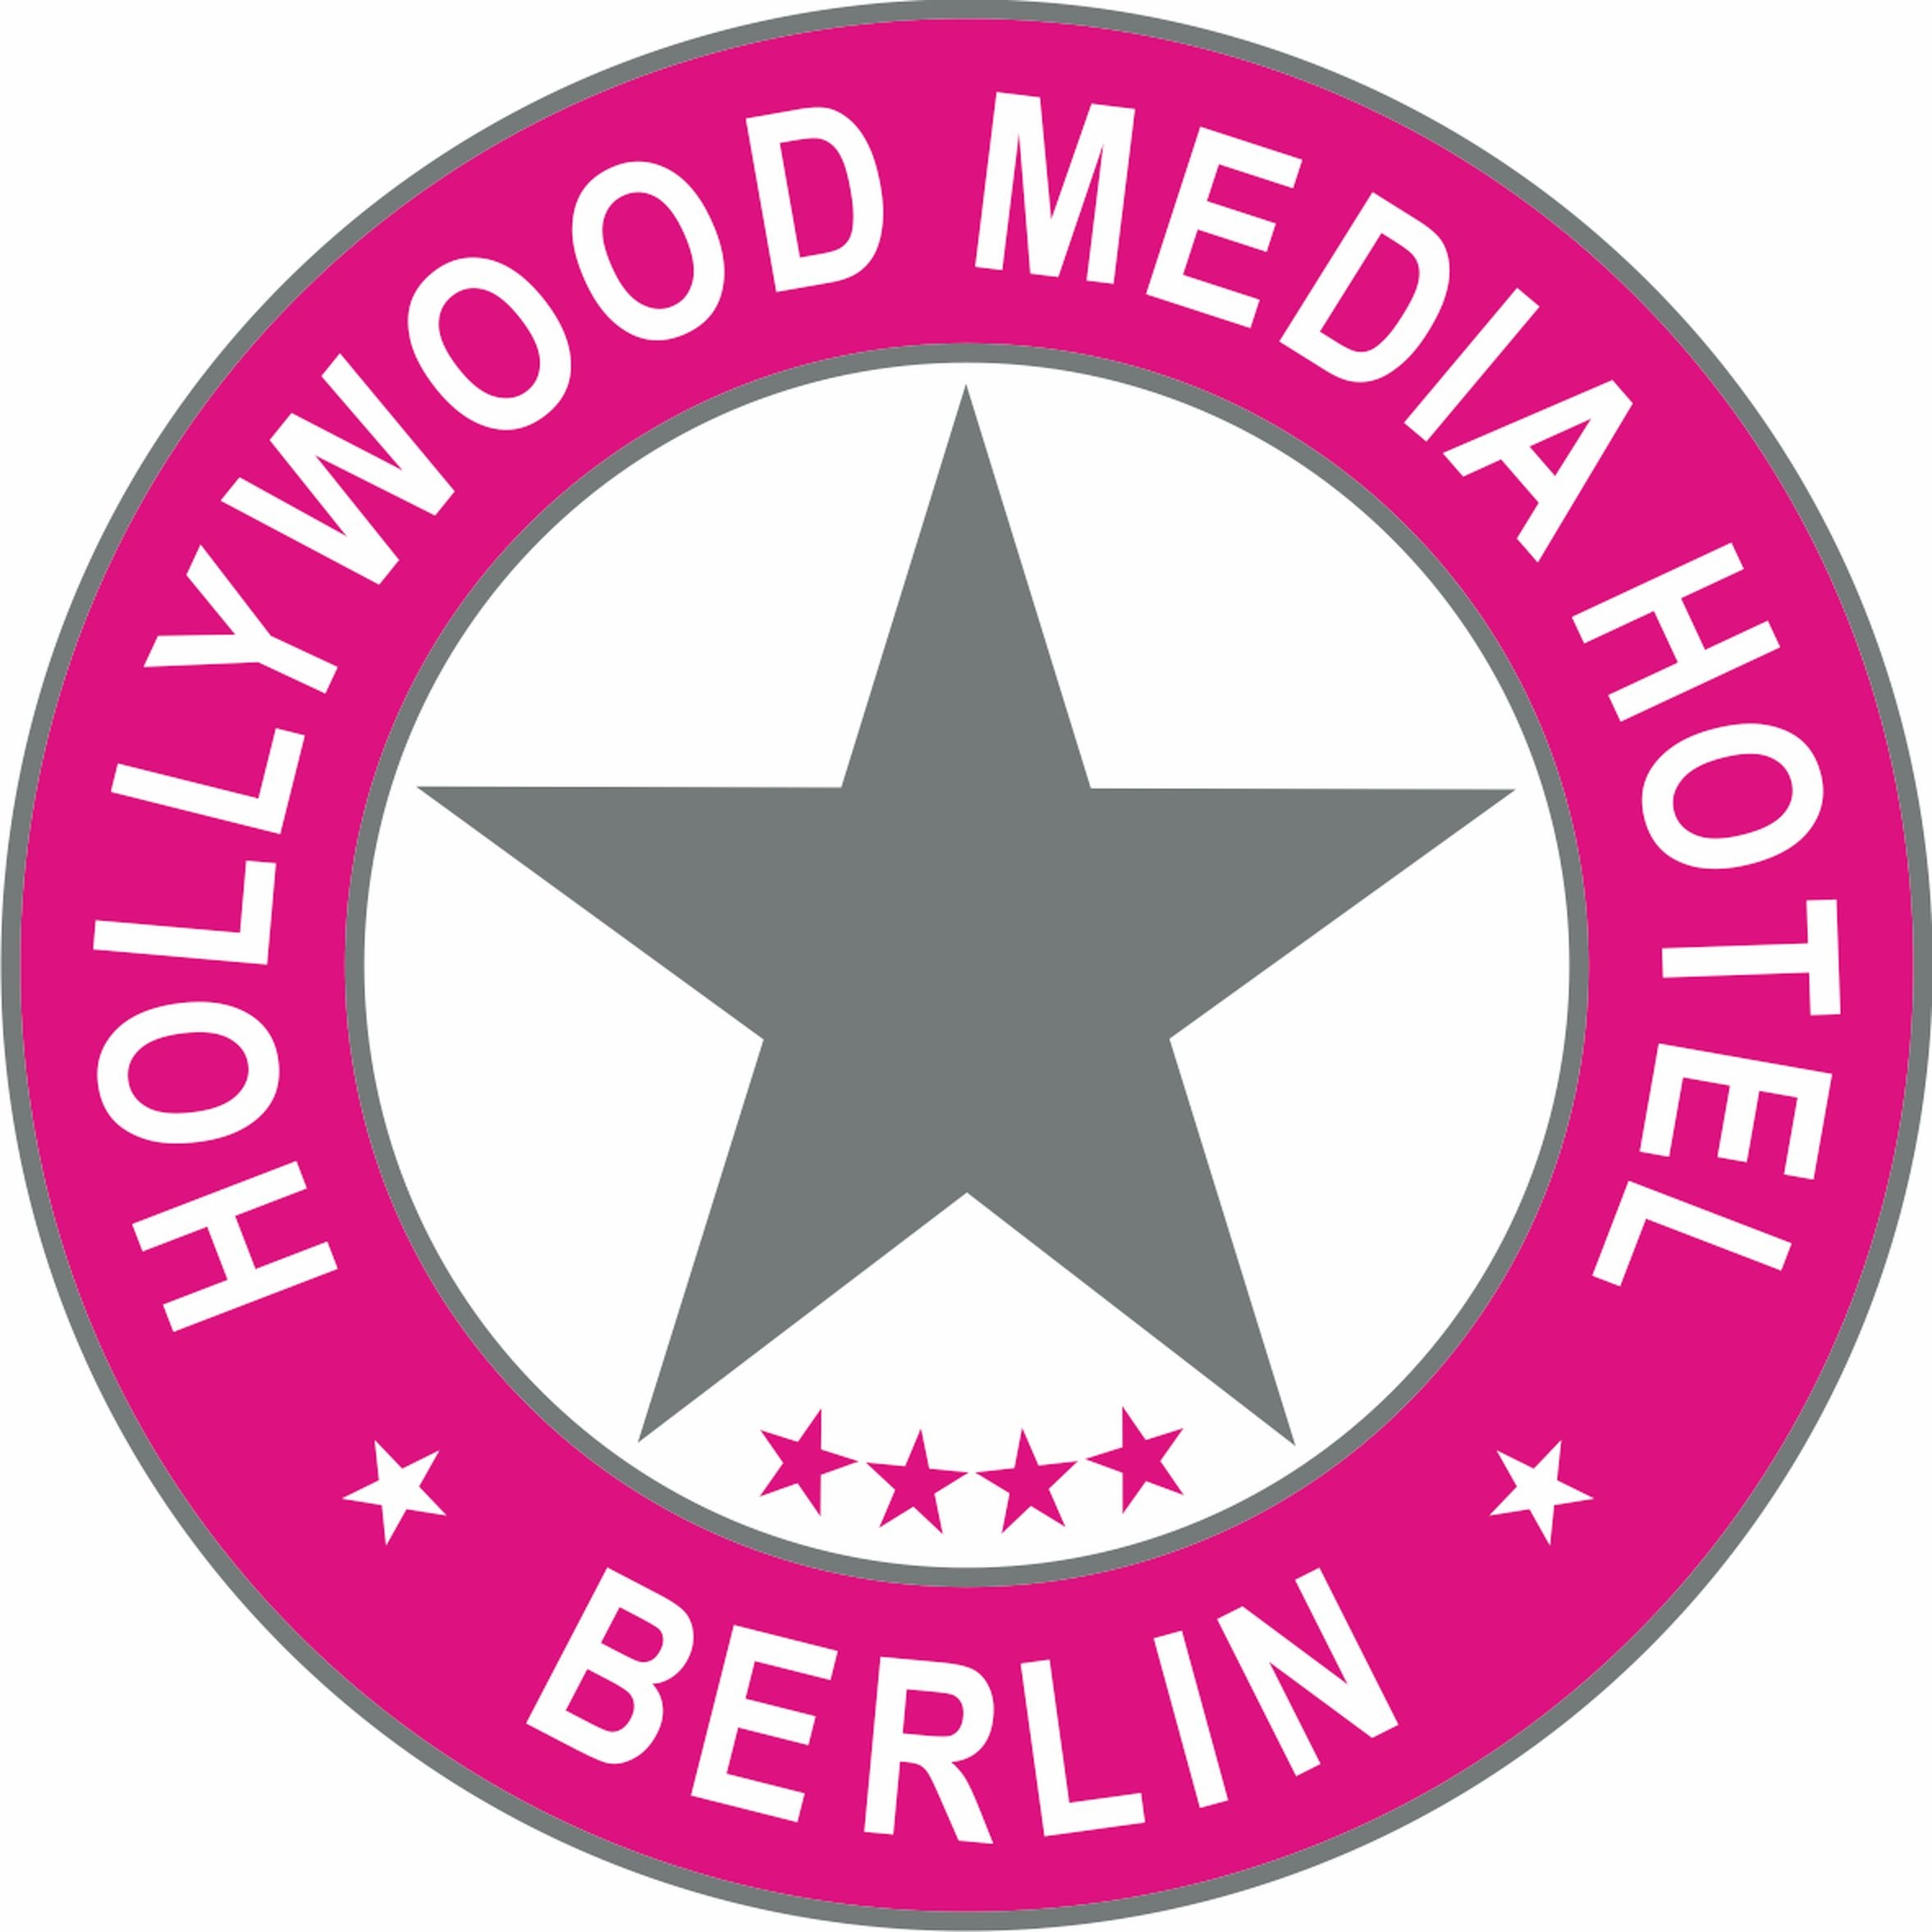 Bild zu Hollywood Media Hotel in Berlin